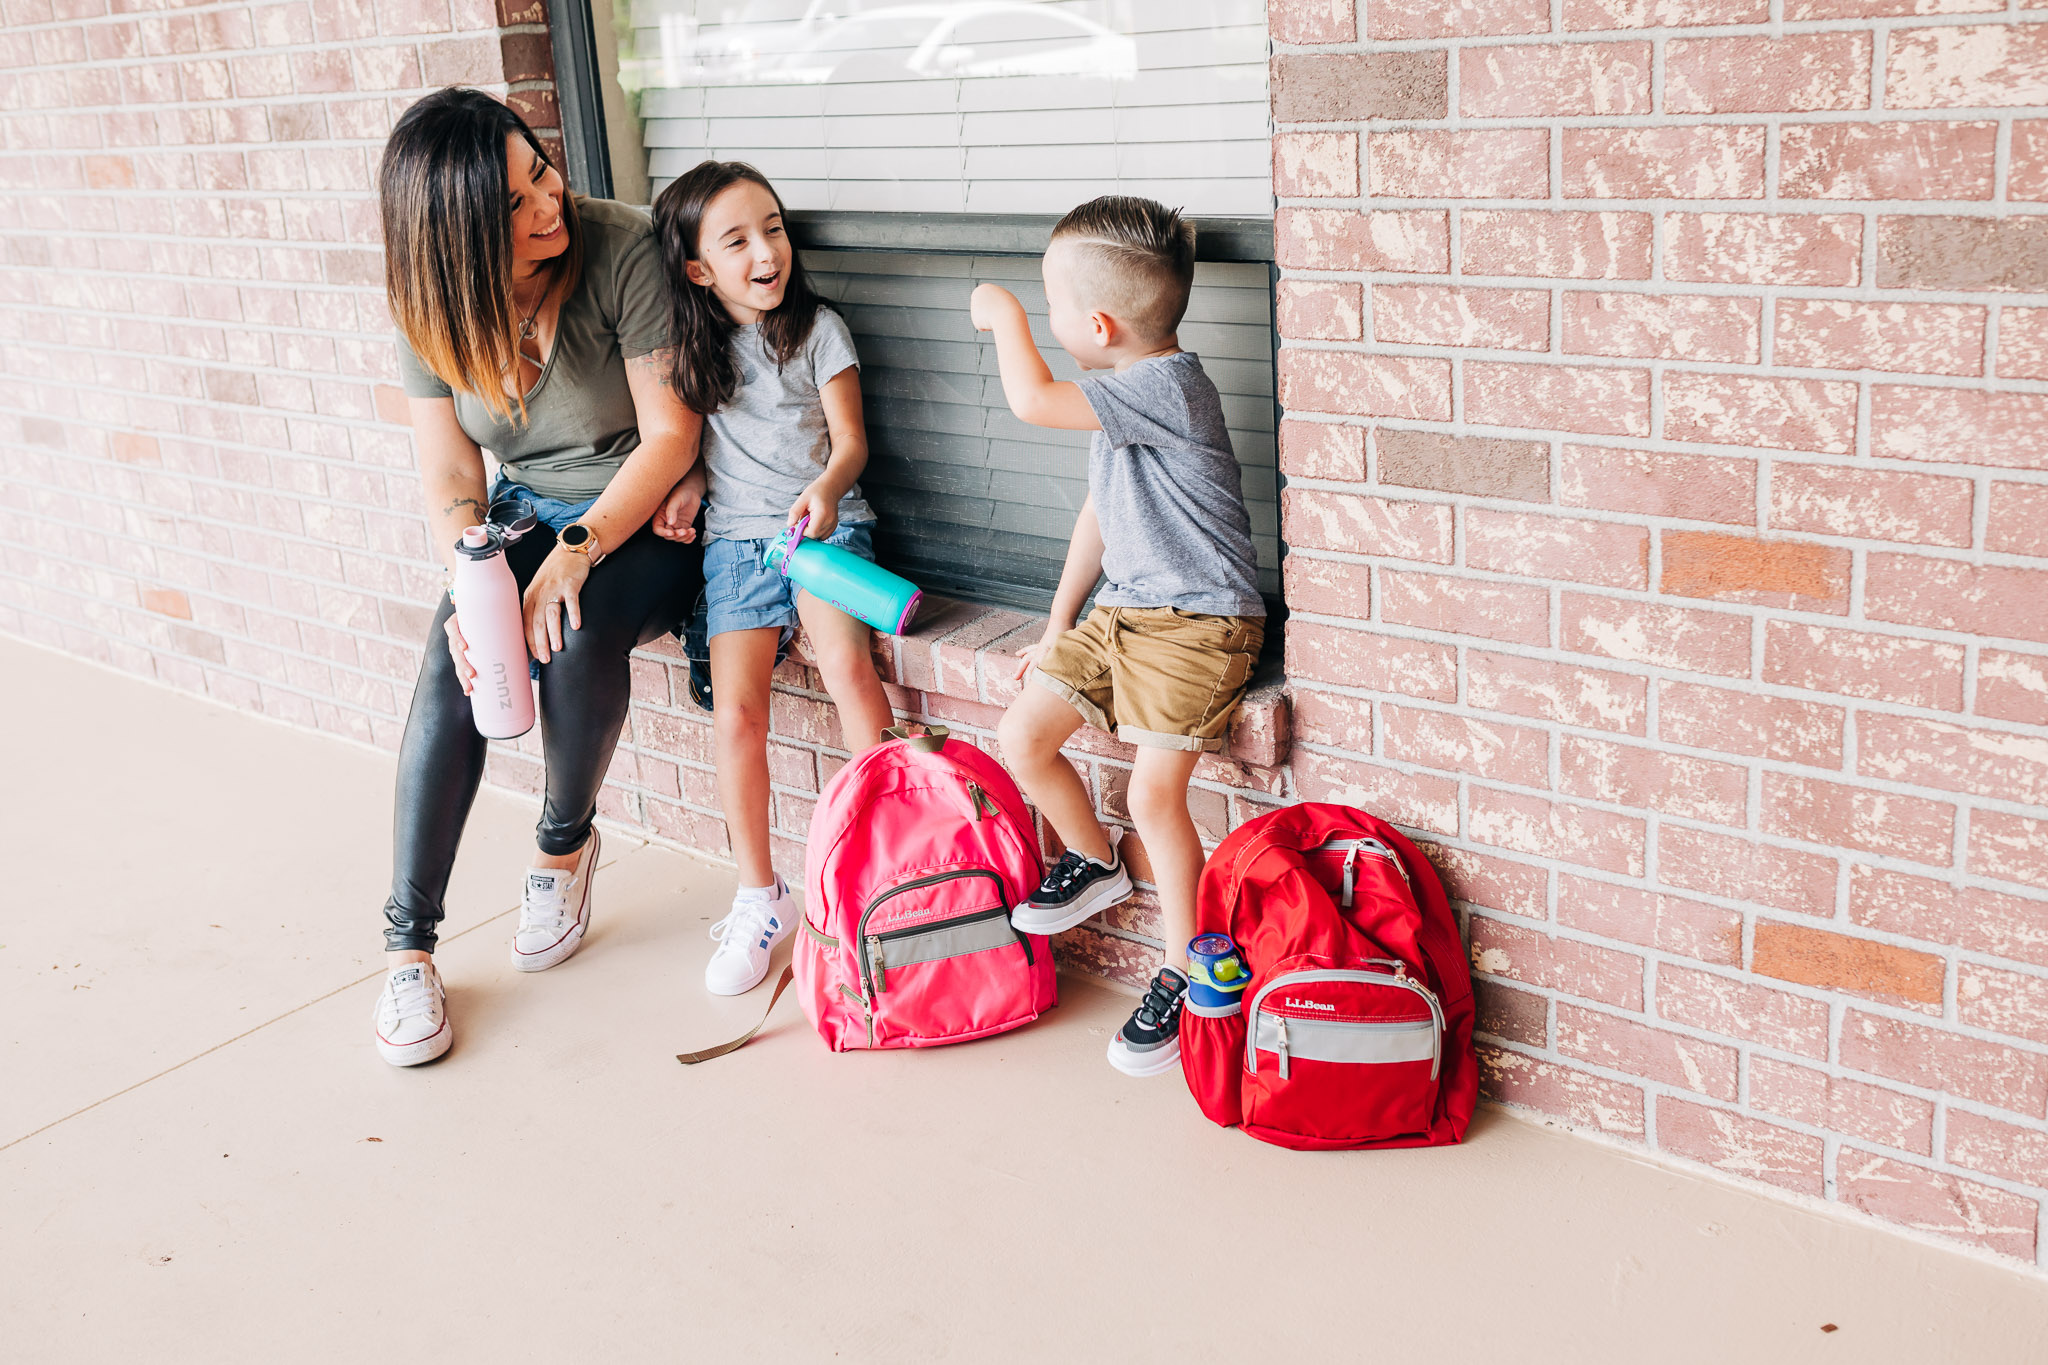 #BacktoSchool #MomHacks Simple Ways to Fight Back to School Germs - Tampa Lifestyle and Mom Blog, Crazy Life with Littles